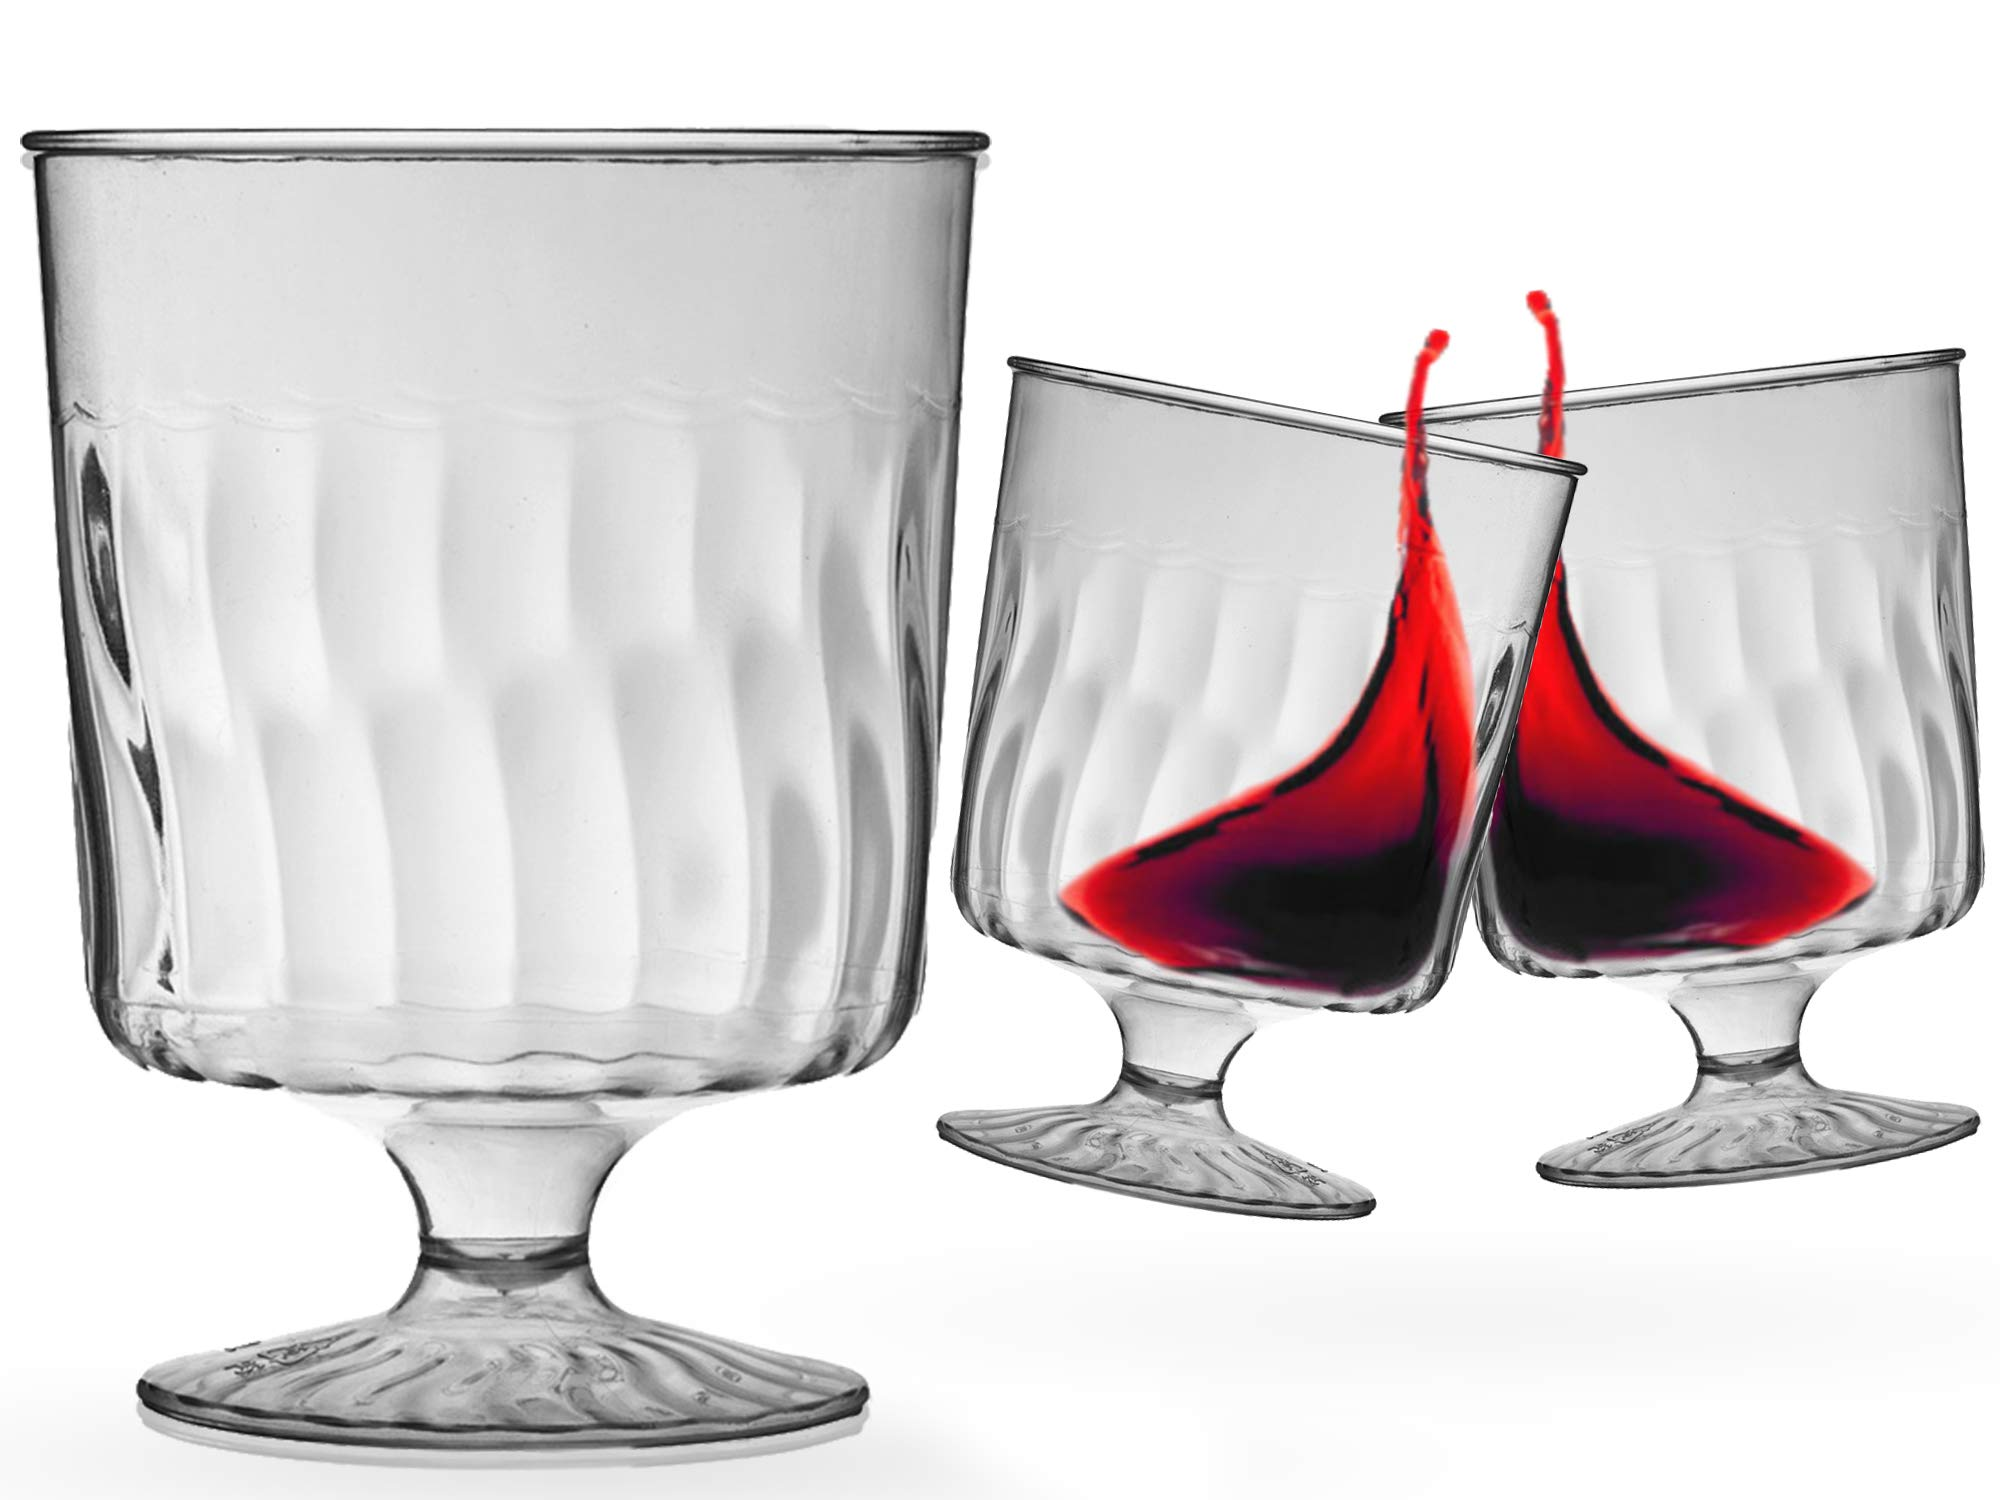 Plastic Wine Glasses - 240 Pcs Disposable Hard Plastic Clear Wine Stems - 8 oz Red Wine Tumblers - Bulk Party Cup Supplies - Cocktail Drinking Glasses for Weddings, Birthday Parties & Other Occasions by Smarty Had A Party